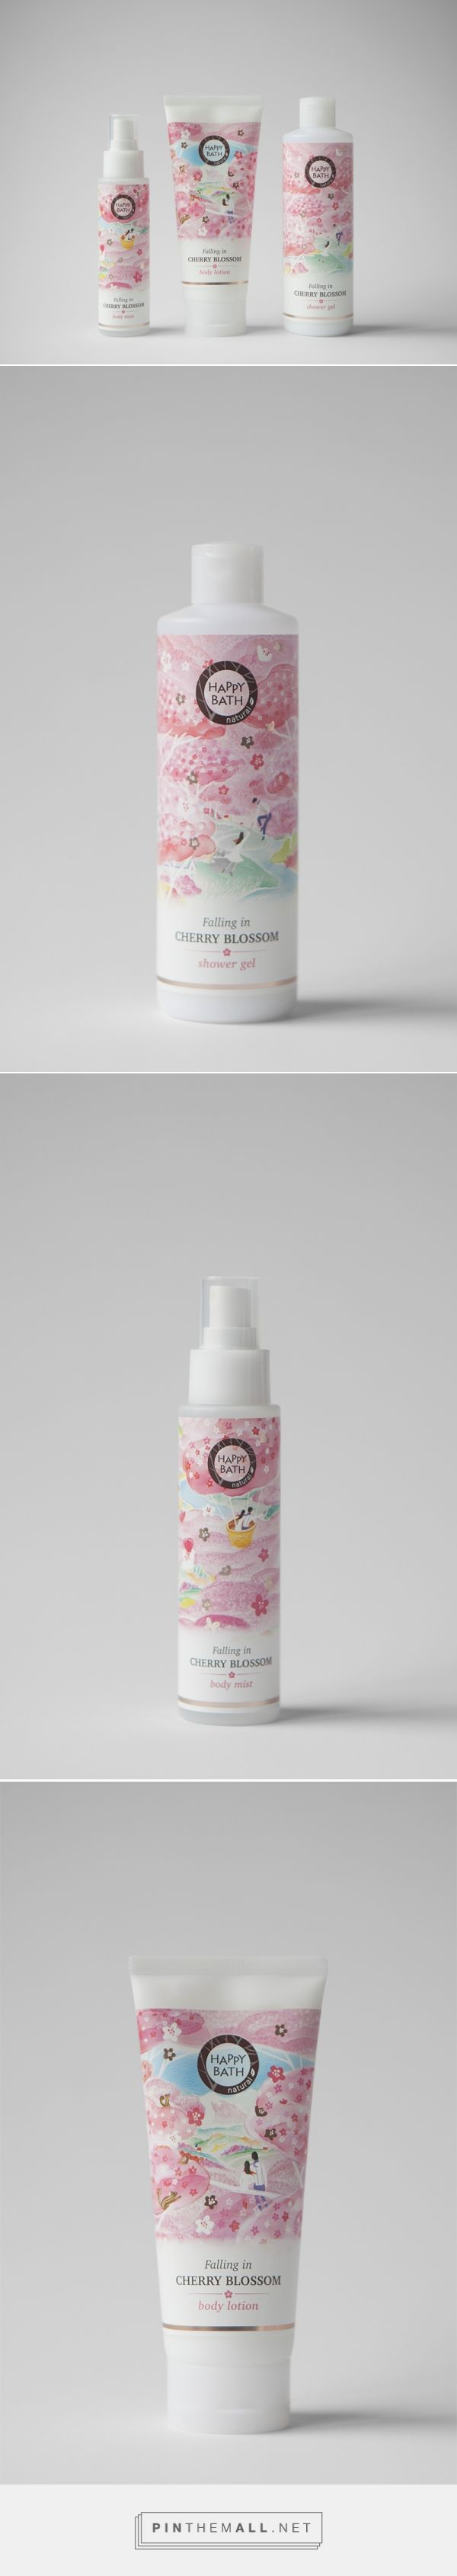 HAPPYBATH 'FALLING IN CHERRY BLOSSOM' | cosmetics by Joseph Park